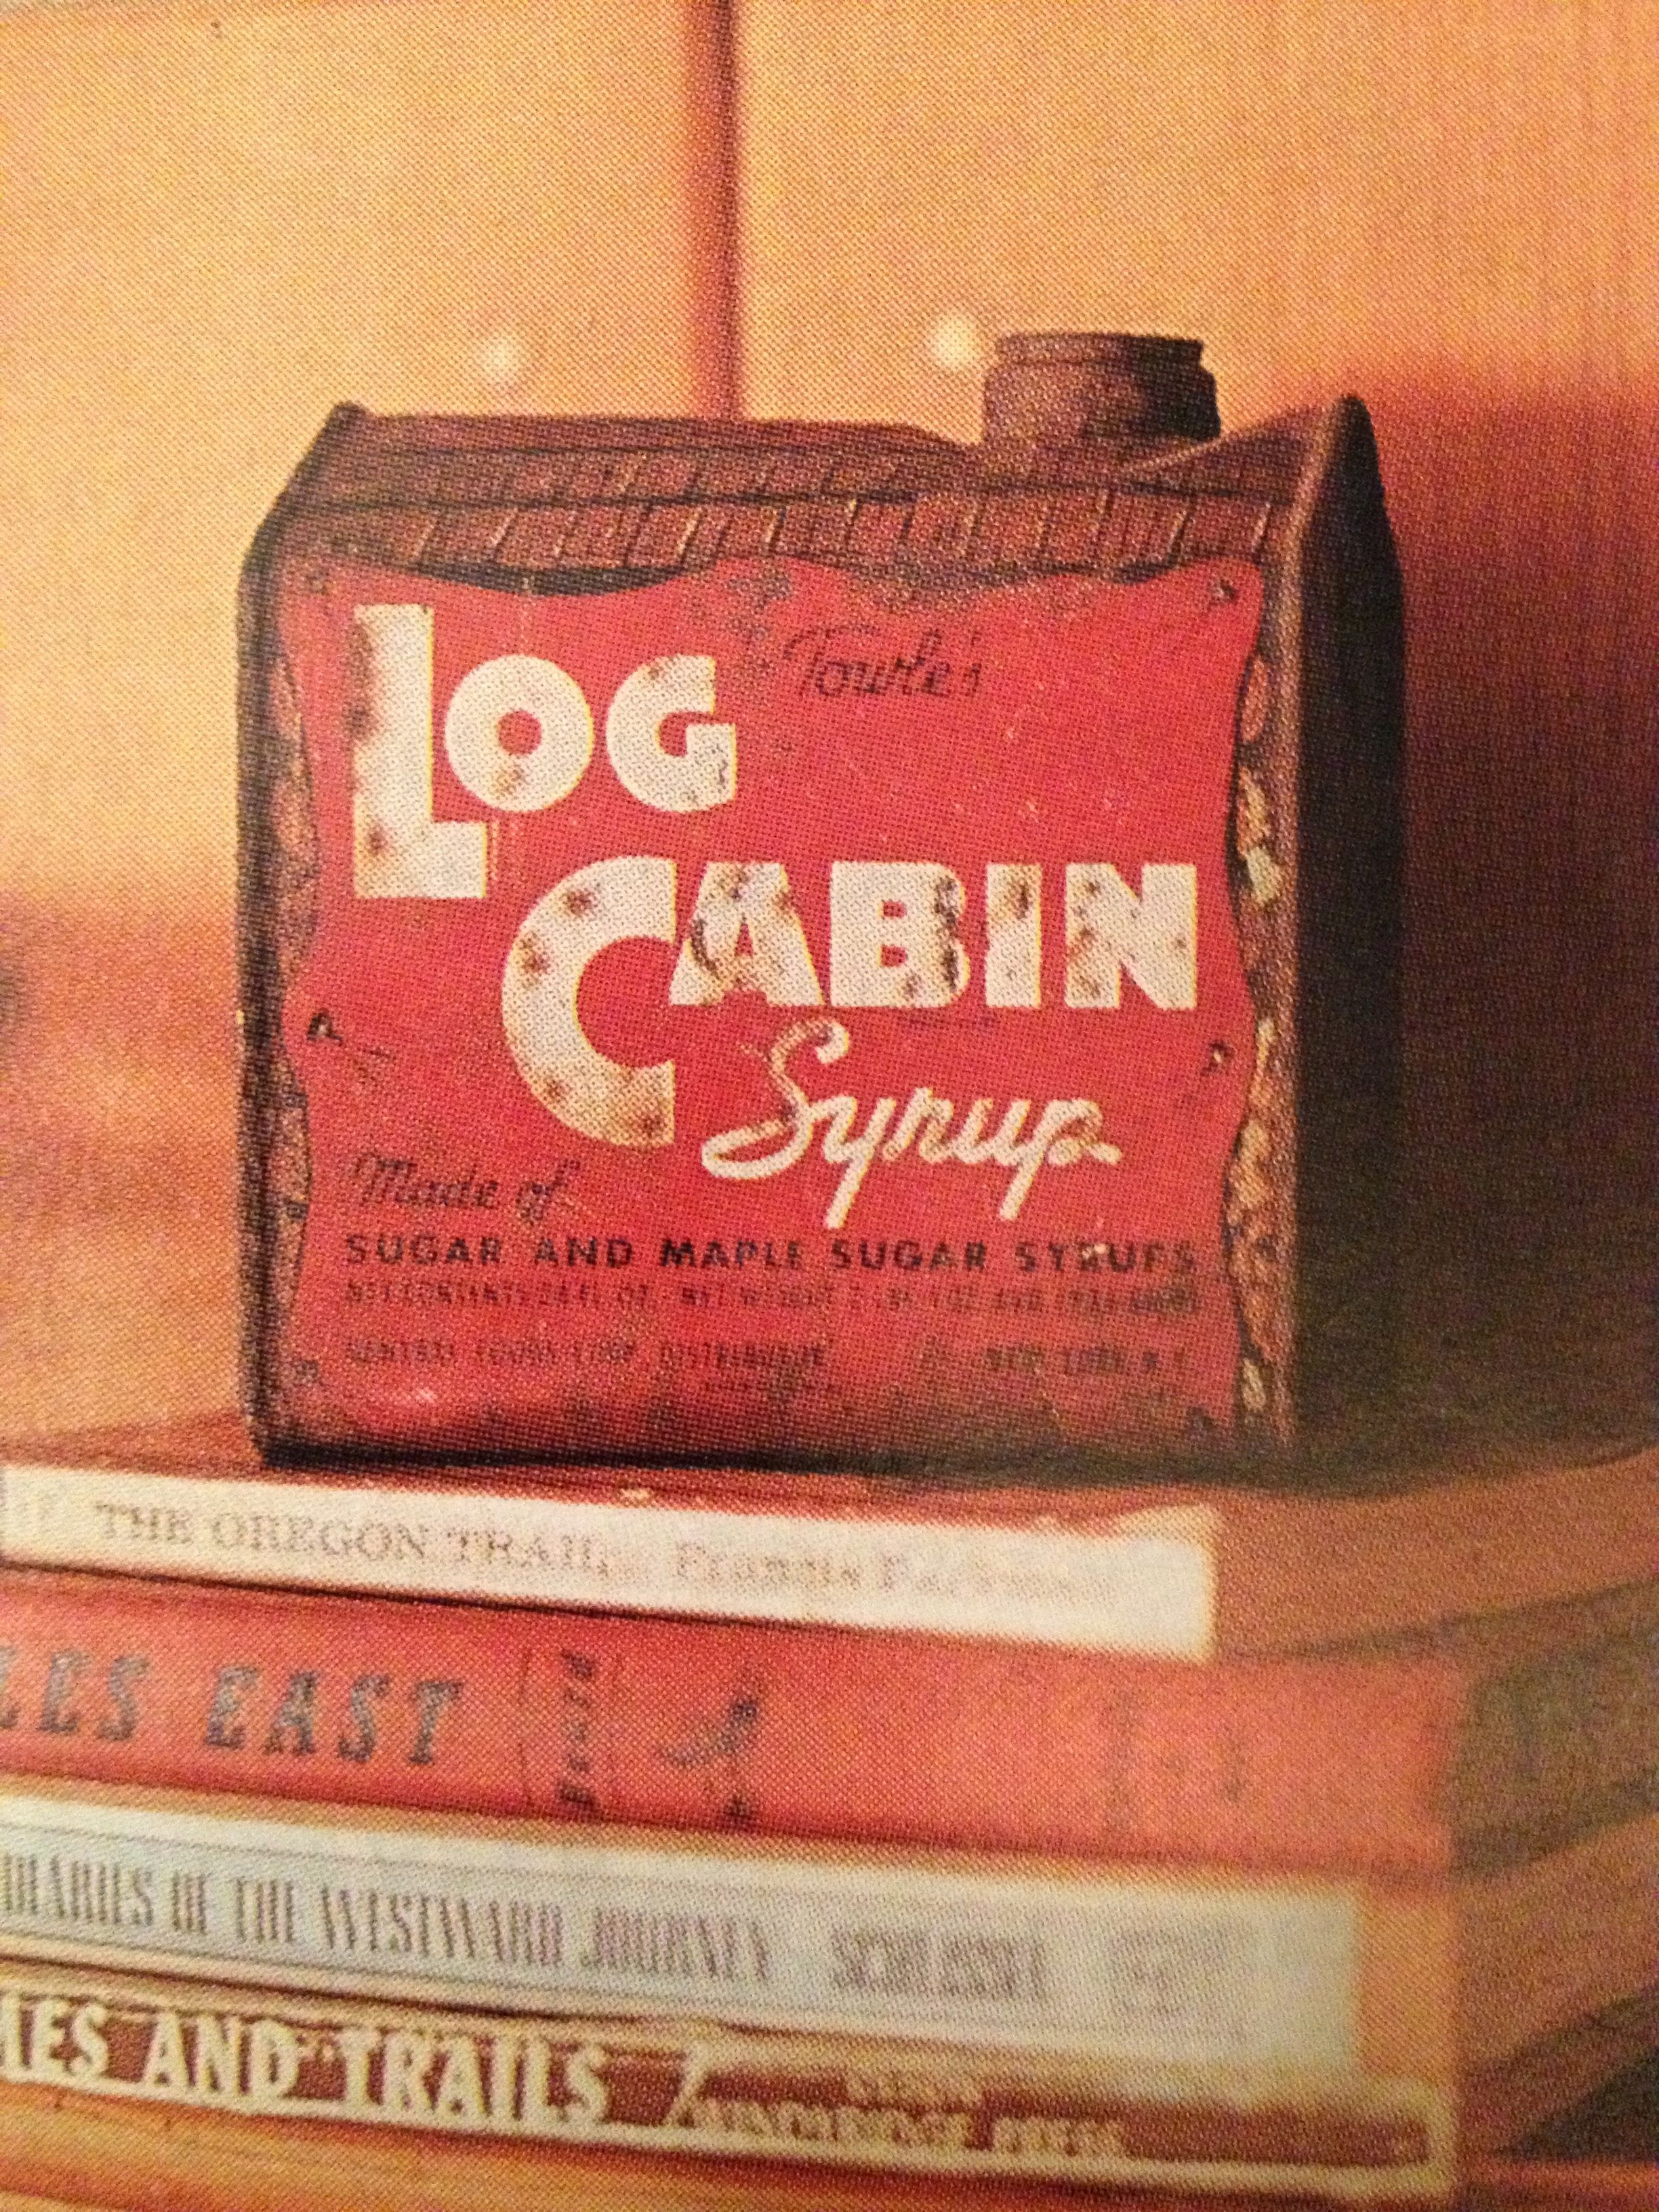 Dating log cabin syrup cans